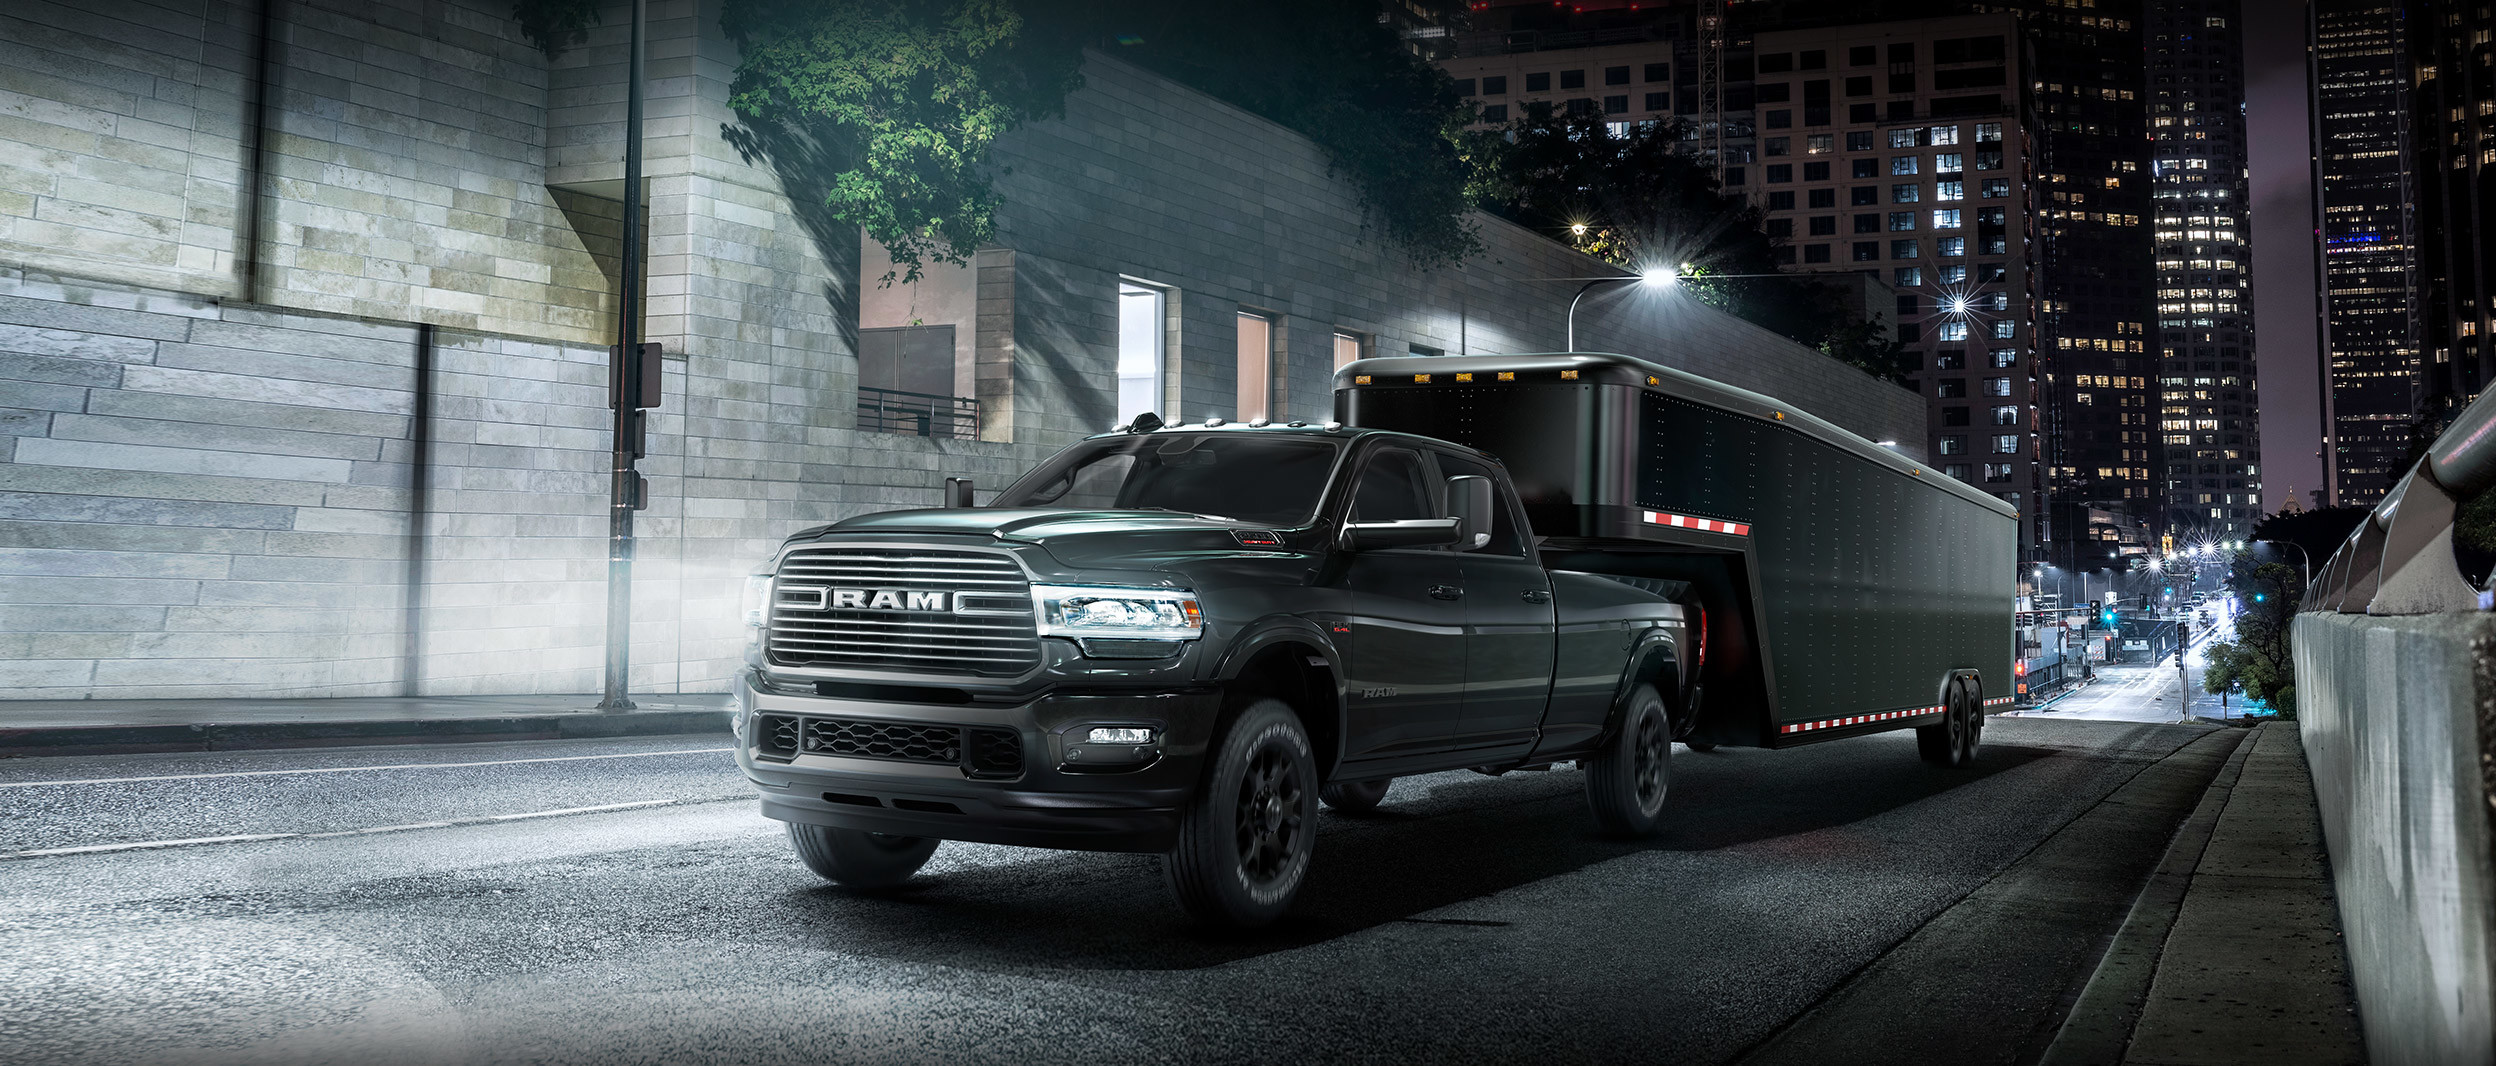 Front three quarter view of the New 2019 Ram 2500 in steel metalic colour towing a trailer on a city street at night